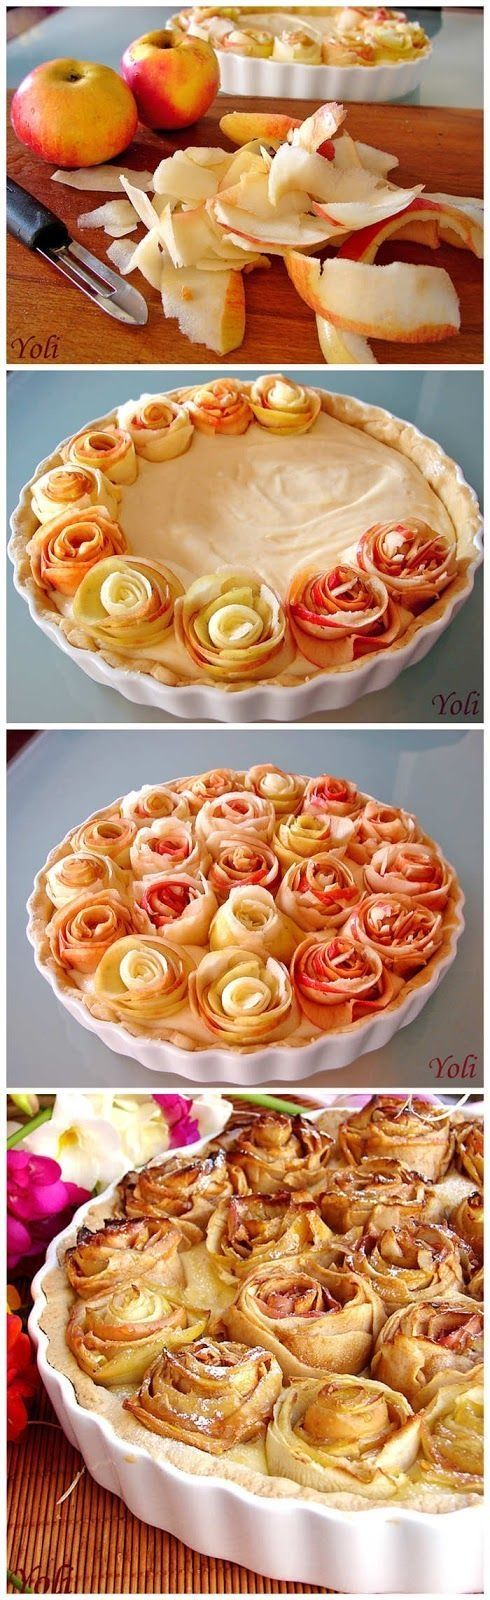 Apple tart, love how different varieties of apples are used to create an unique color palette - edible art!